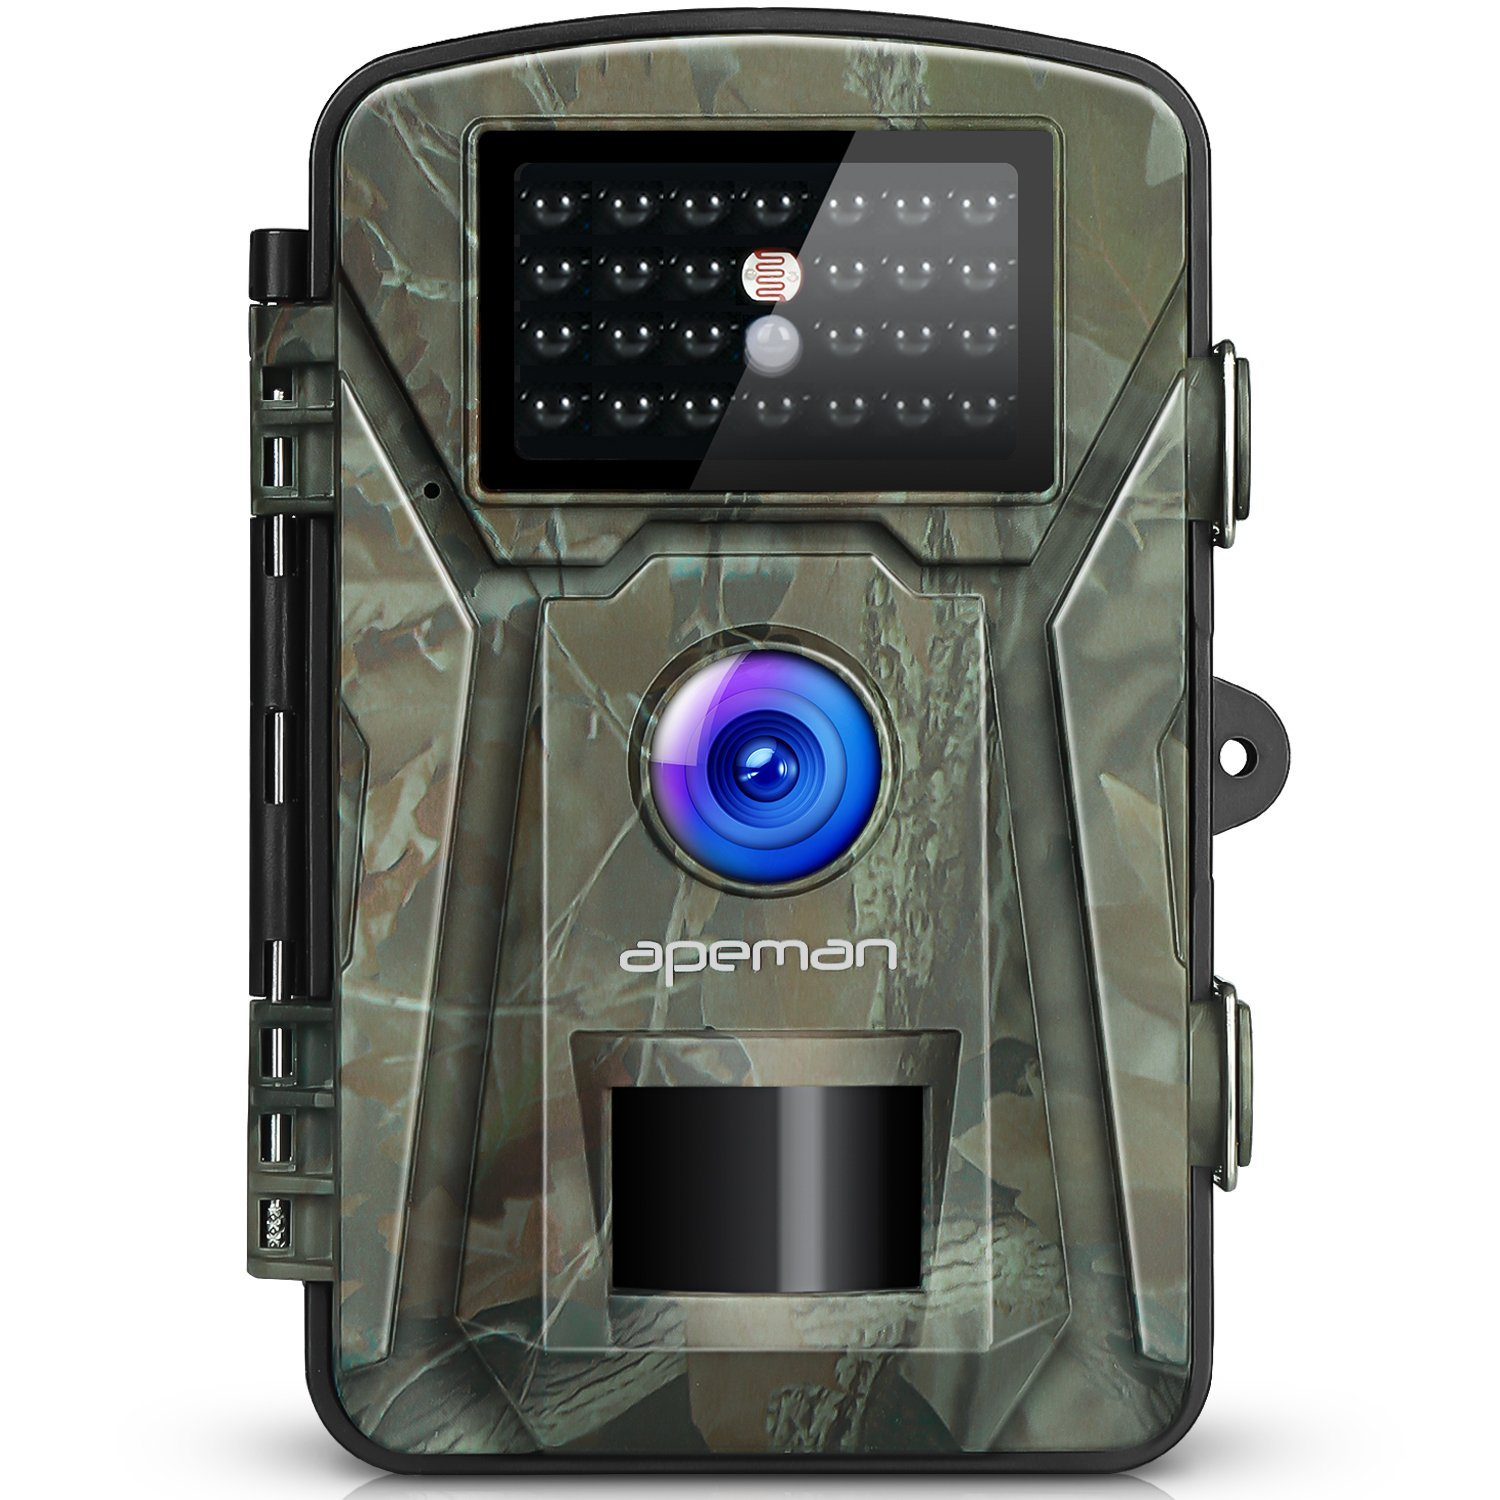 APEMAN Trail Camera 12MP 1080P 2.4'' LCD Game&Hunting Camera with 940nm Upgrading IR LEDs Night Vision up to 65ft/20m IP66 Spray Water Protected Design by APEMAN